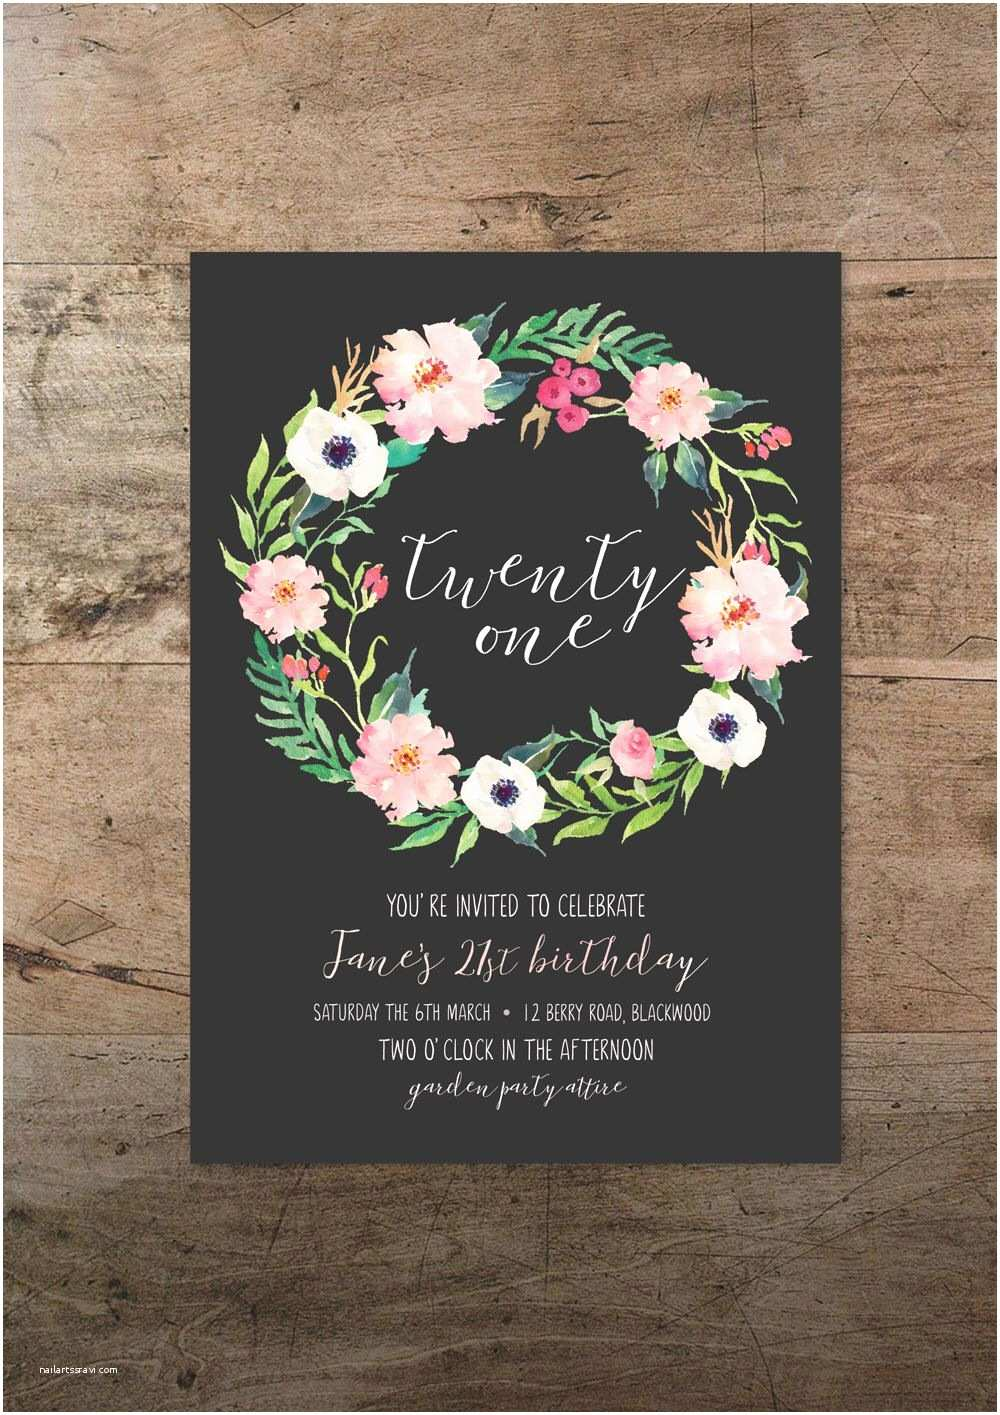 21st Birthday Invitations Twenty First Invitation Floral Twenty One 21st Birthday